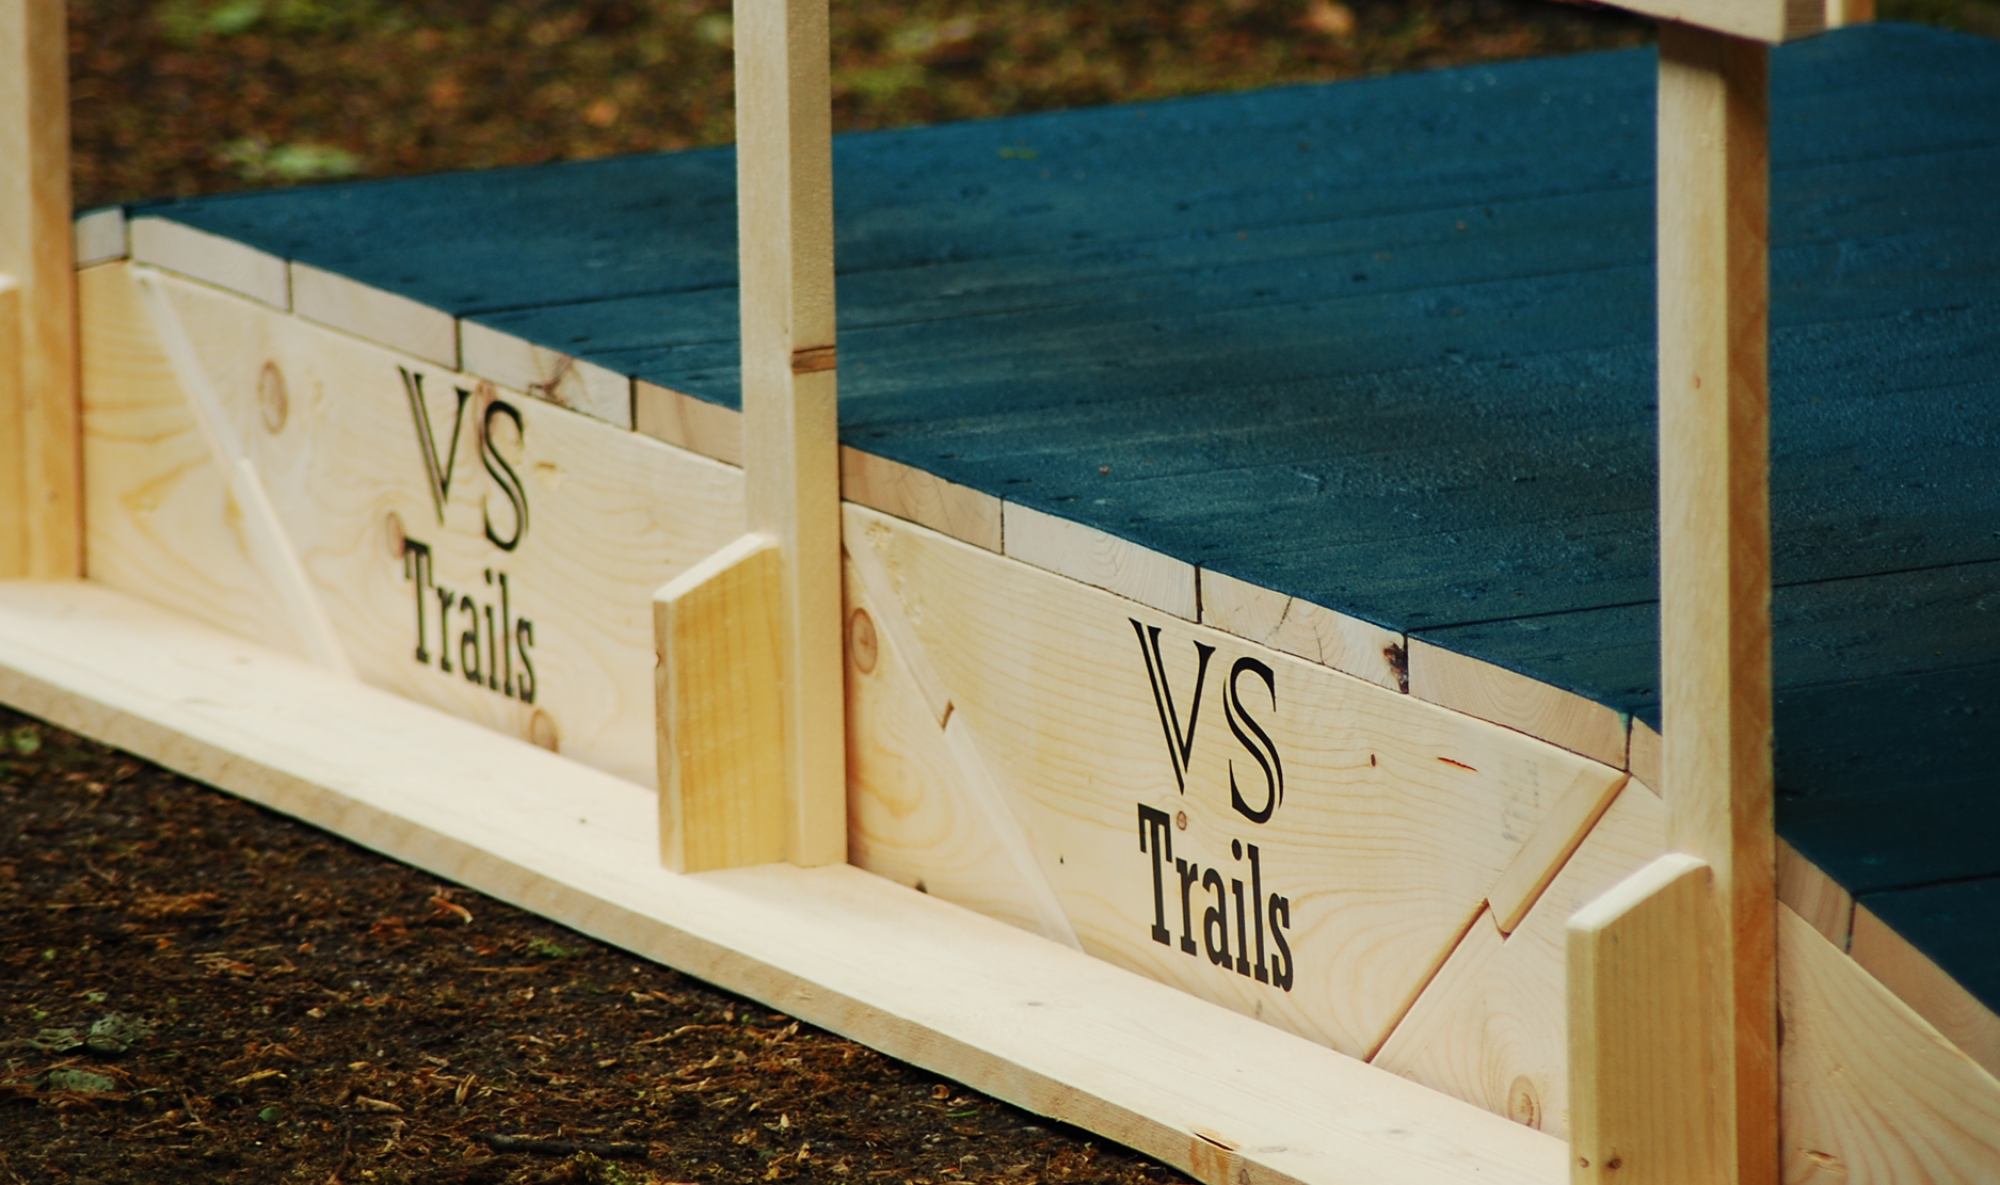 VS Trails